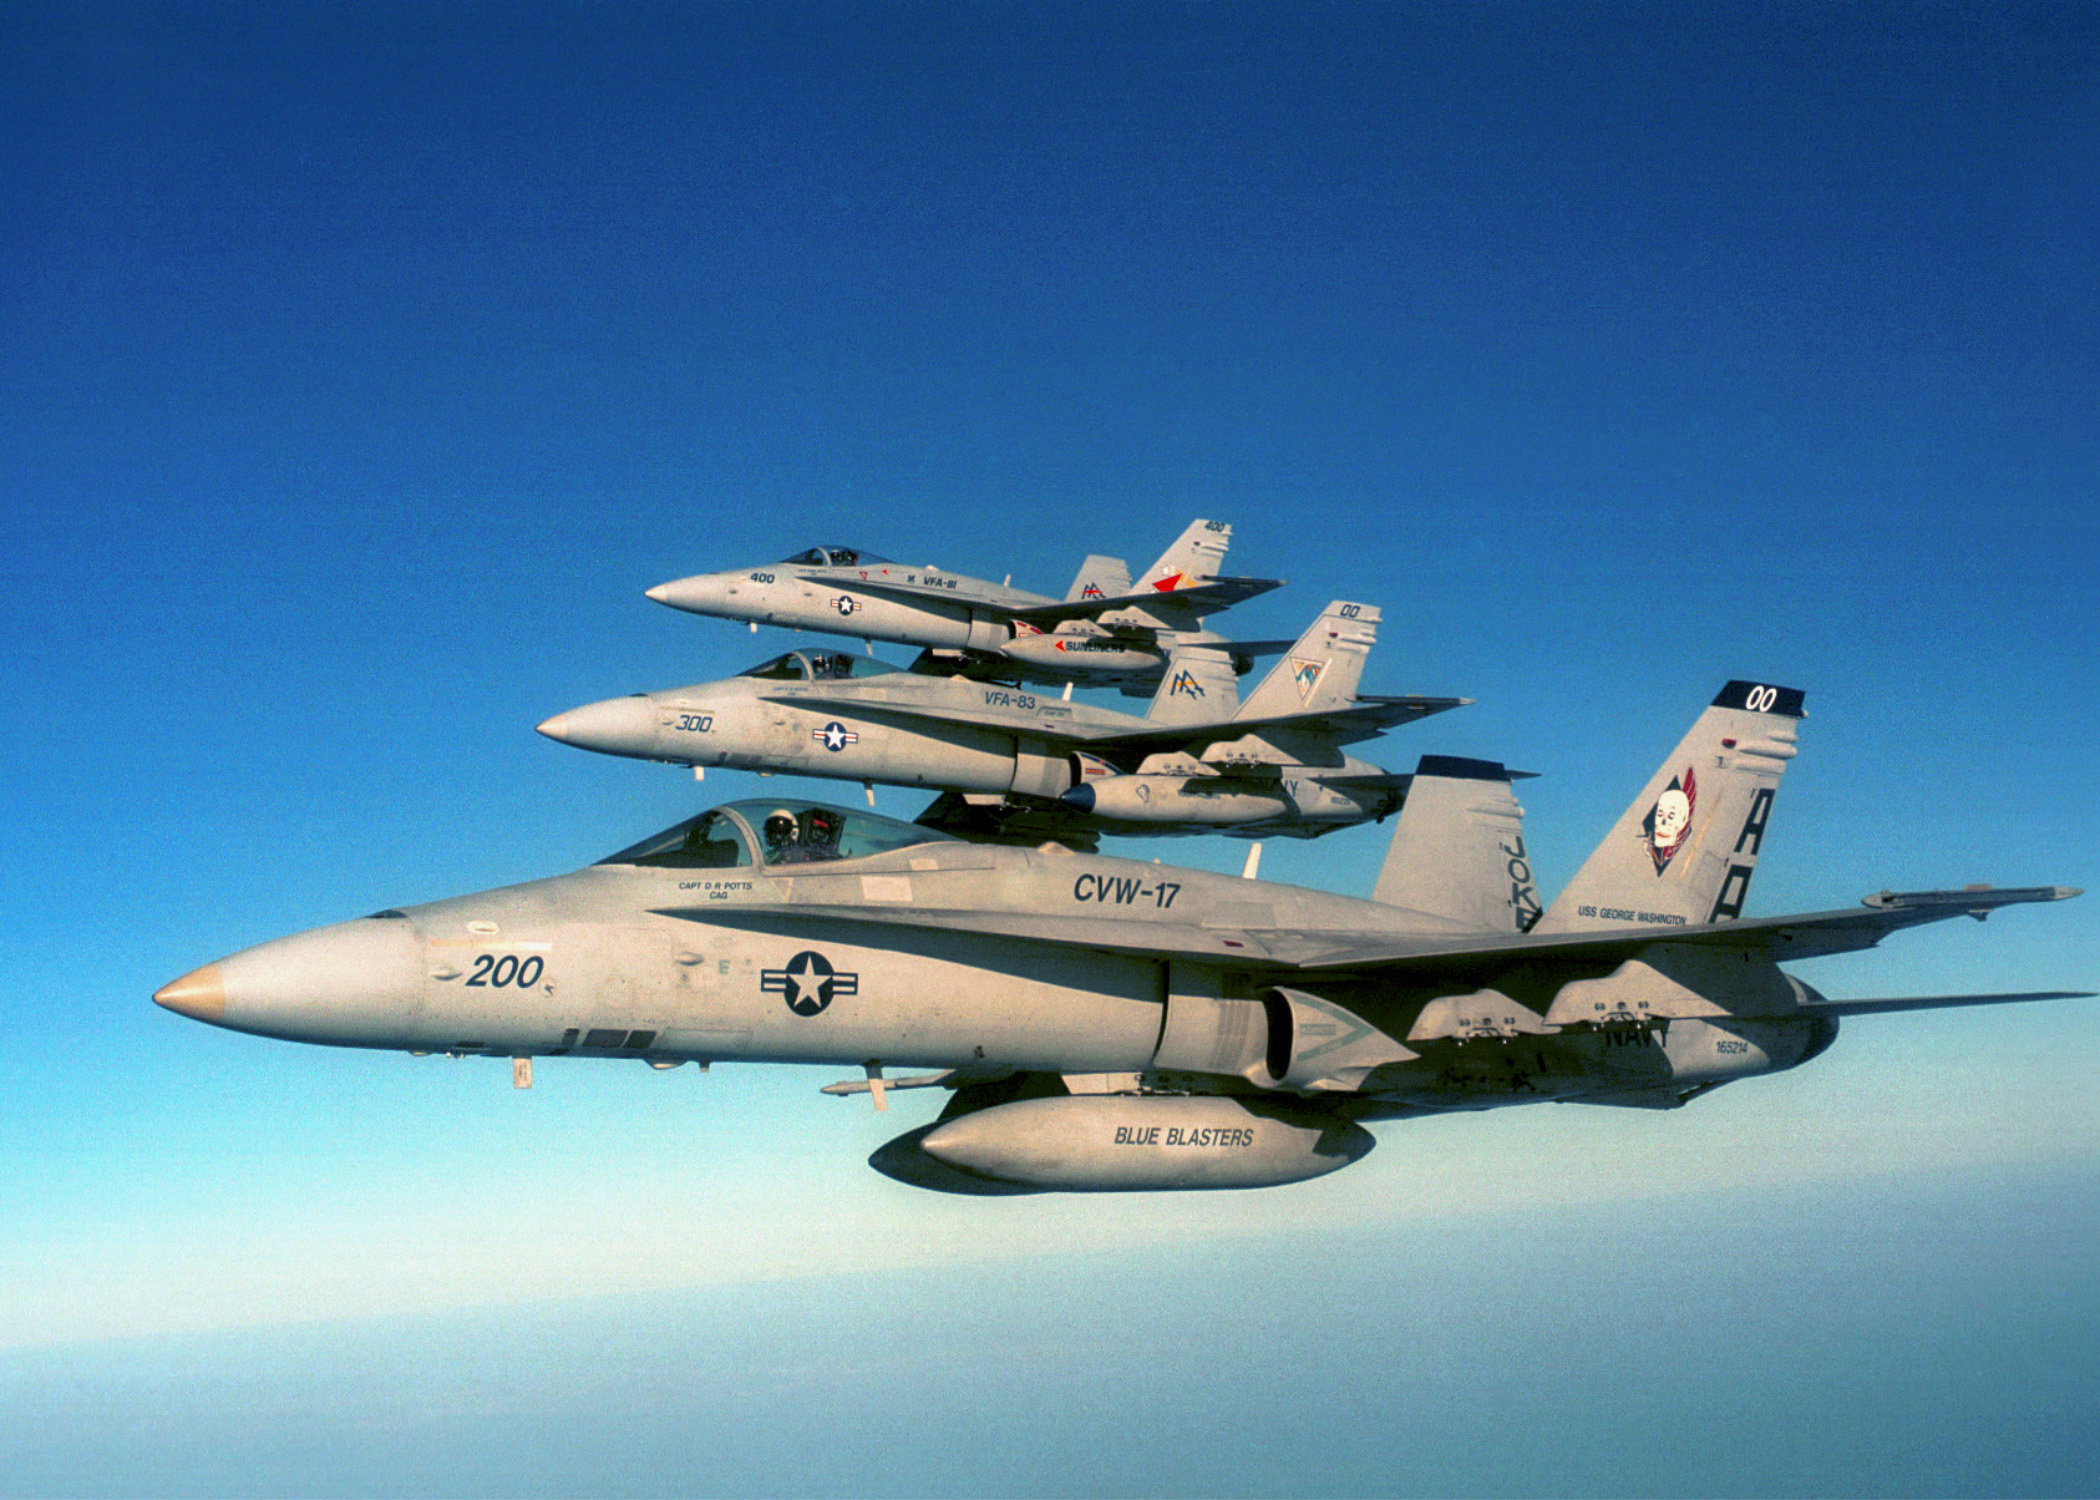 F/a-18 Hornet Strike Fighters From Carrier Air Wing One